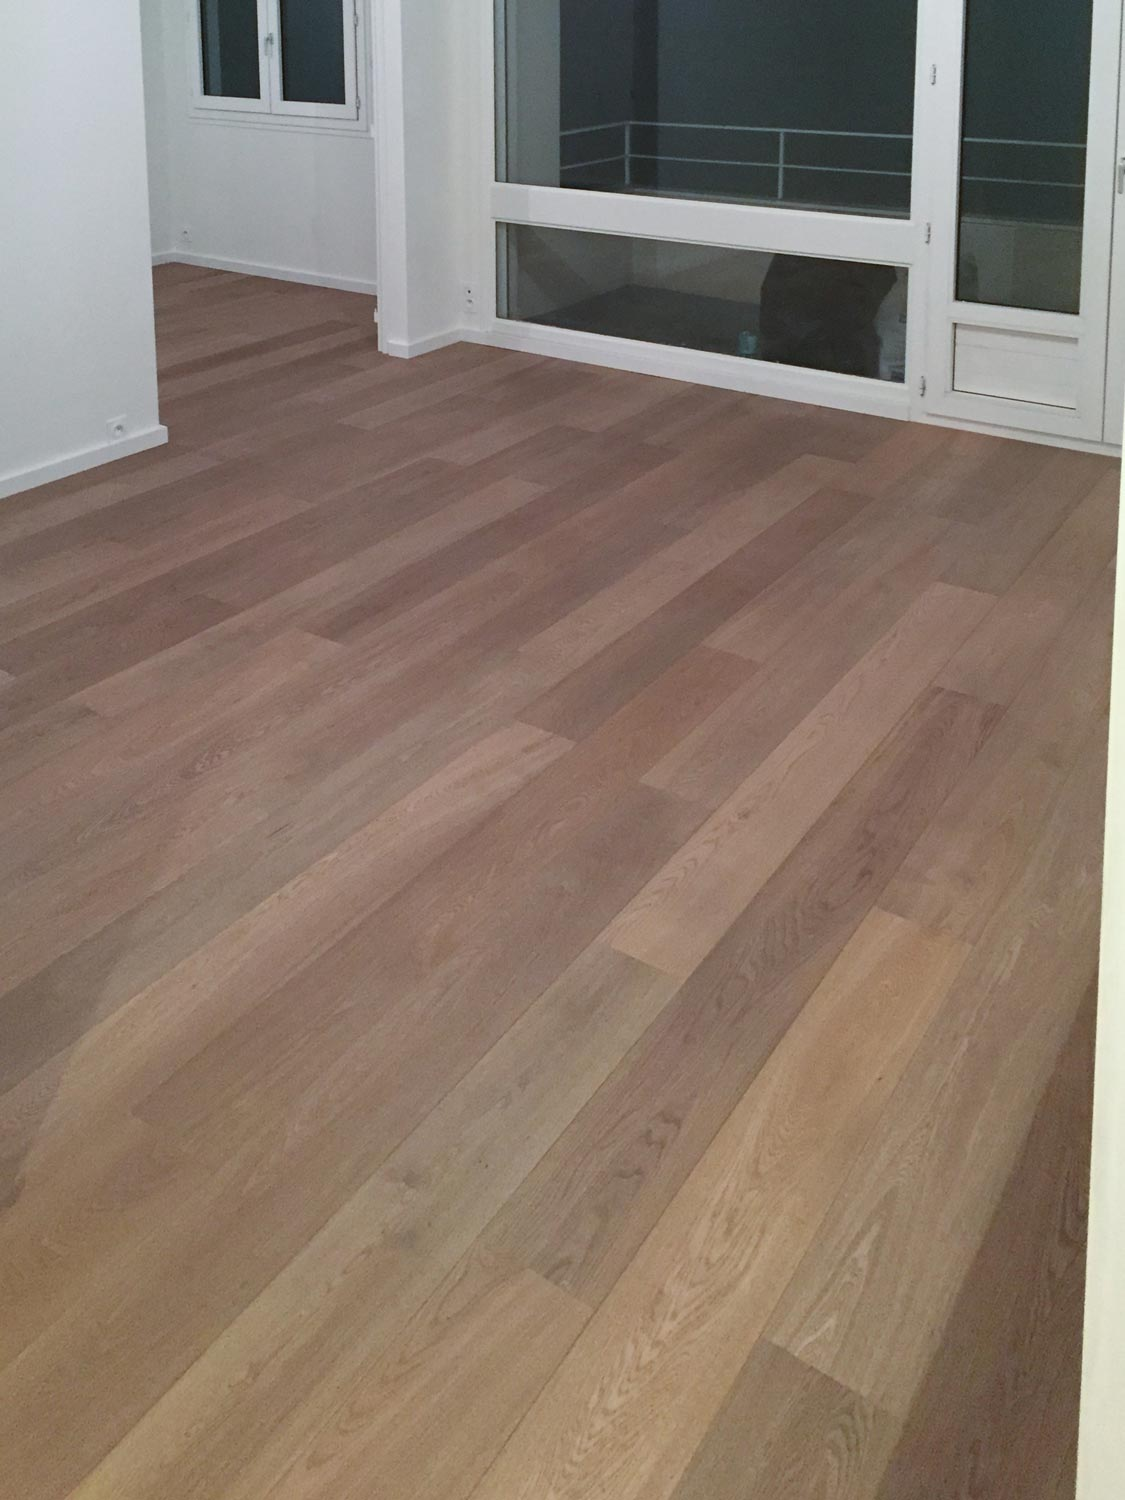 Parquet_Pose_Menuiserie_Littlewood